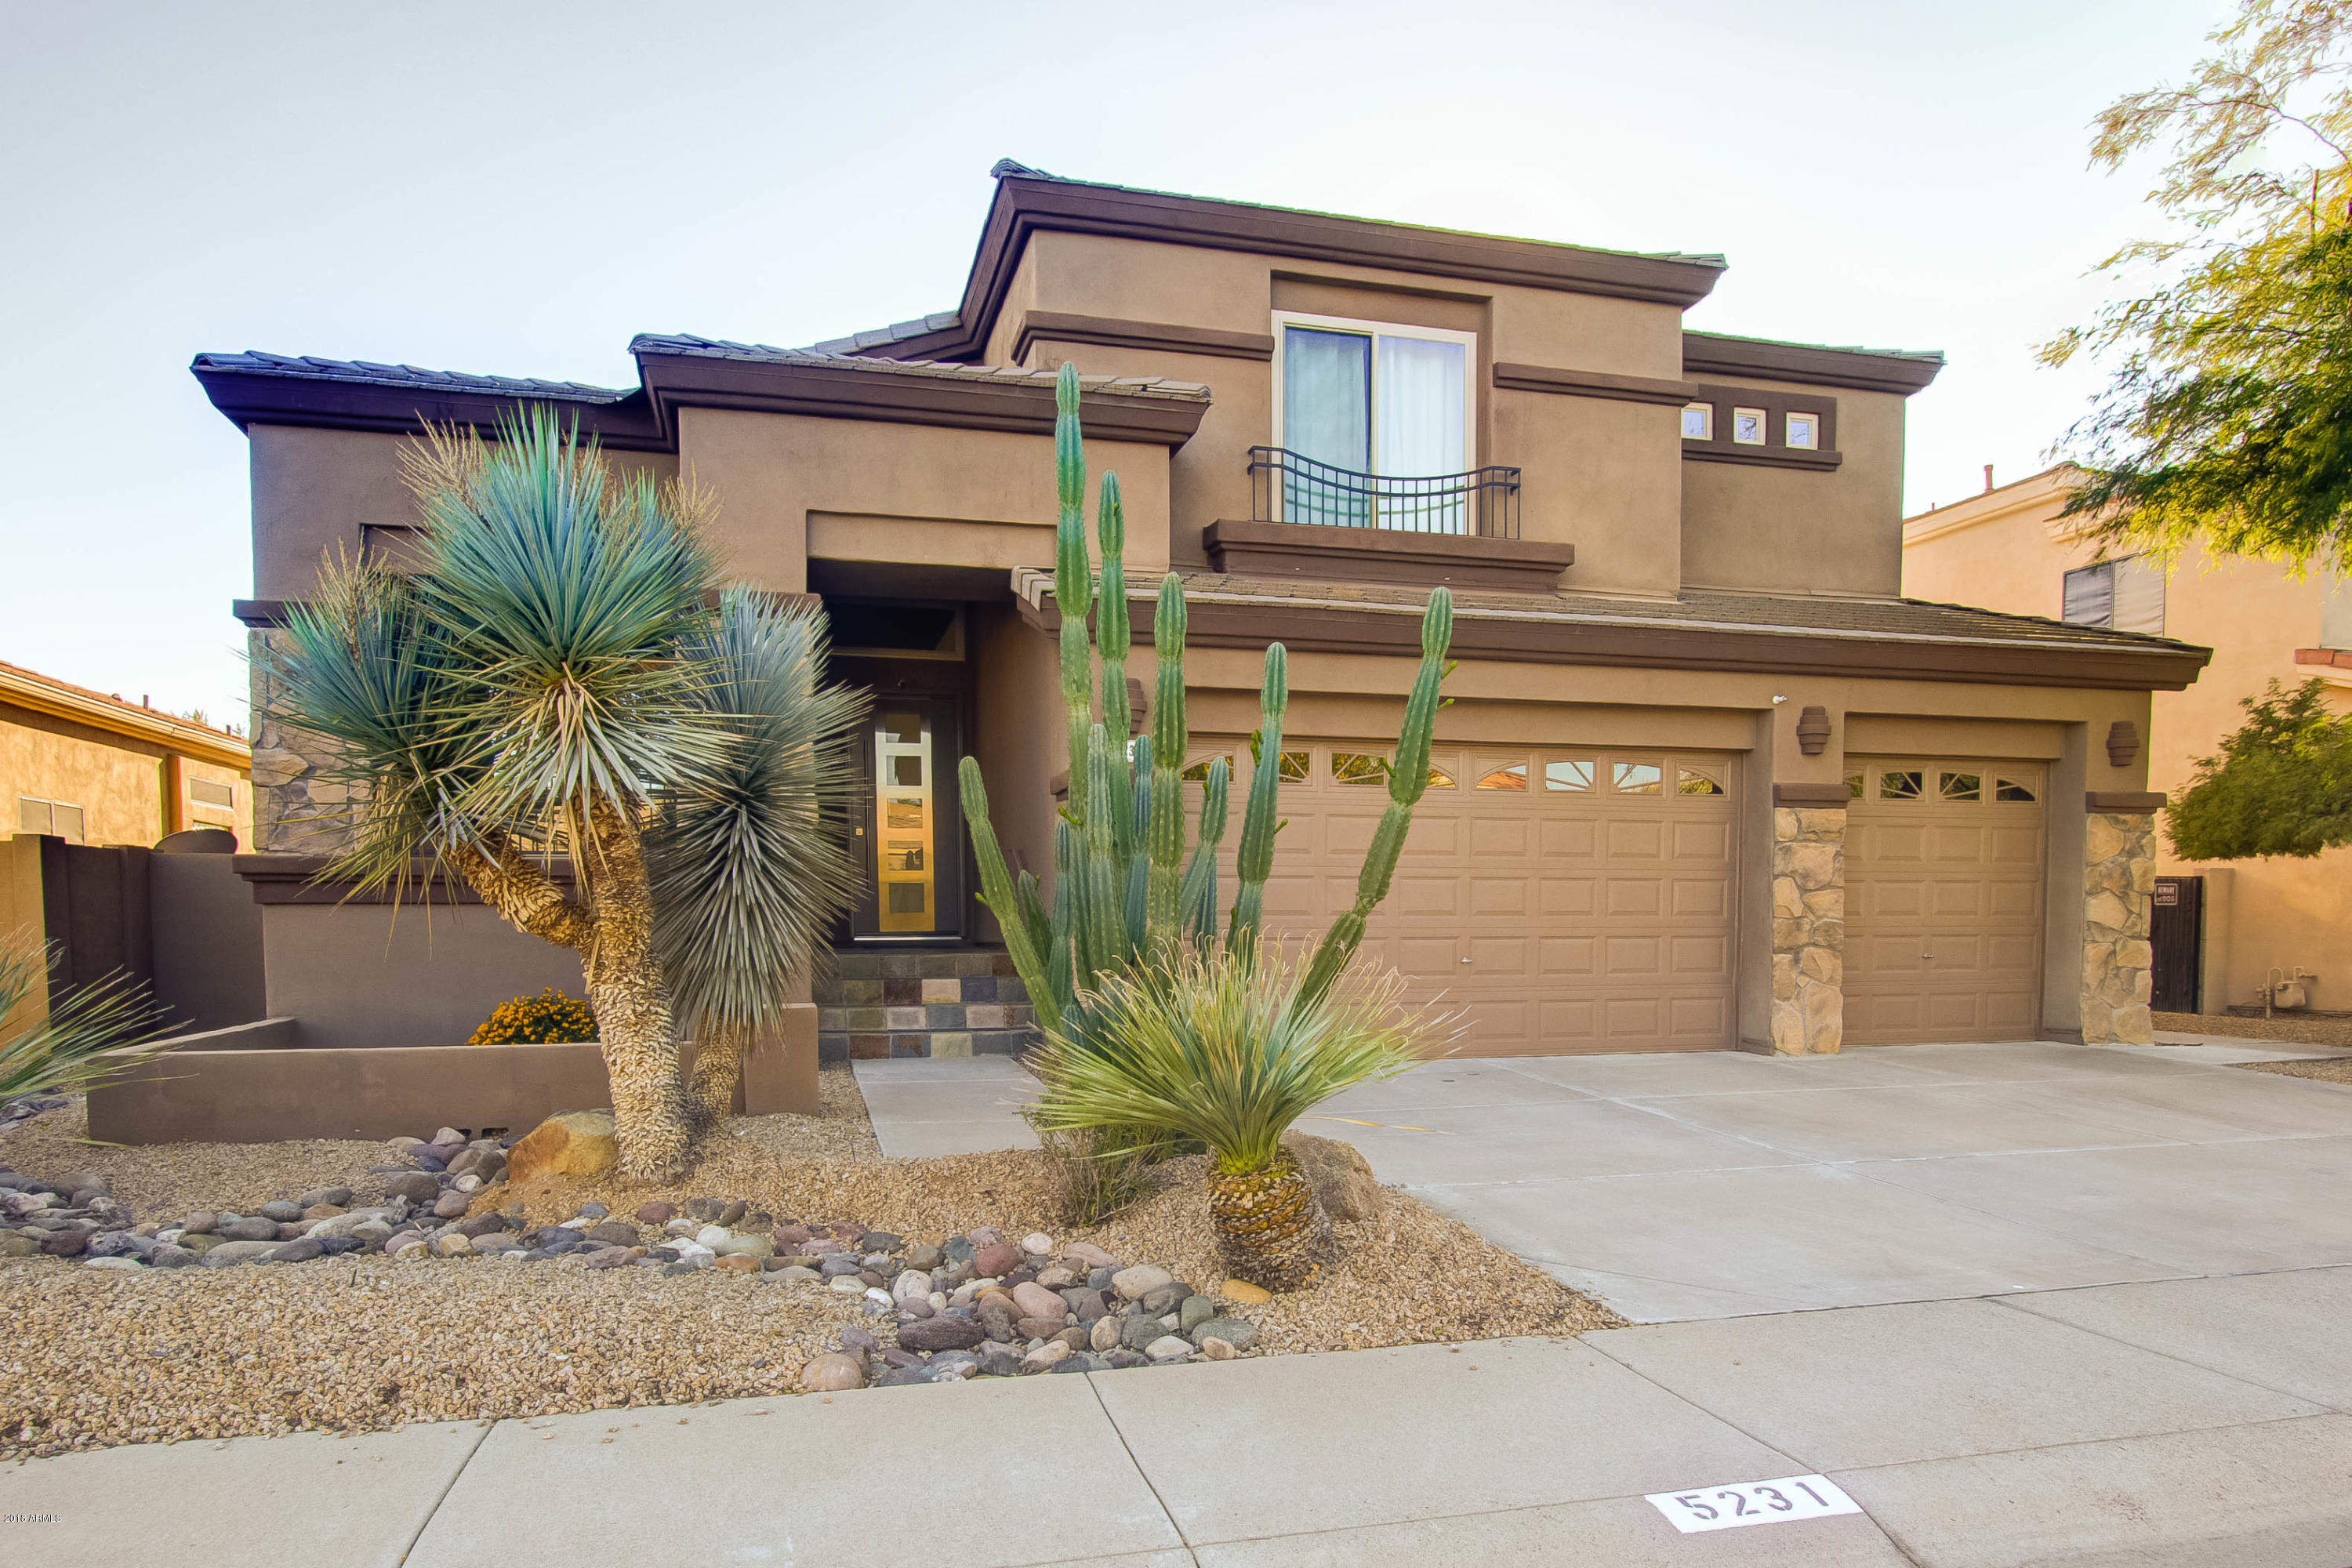 Photo of 5231 E HERRERA Drive, Phoenix, AZ 85054